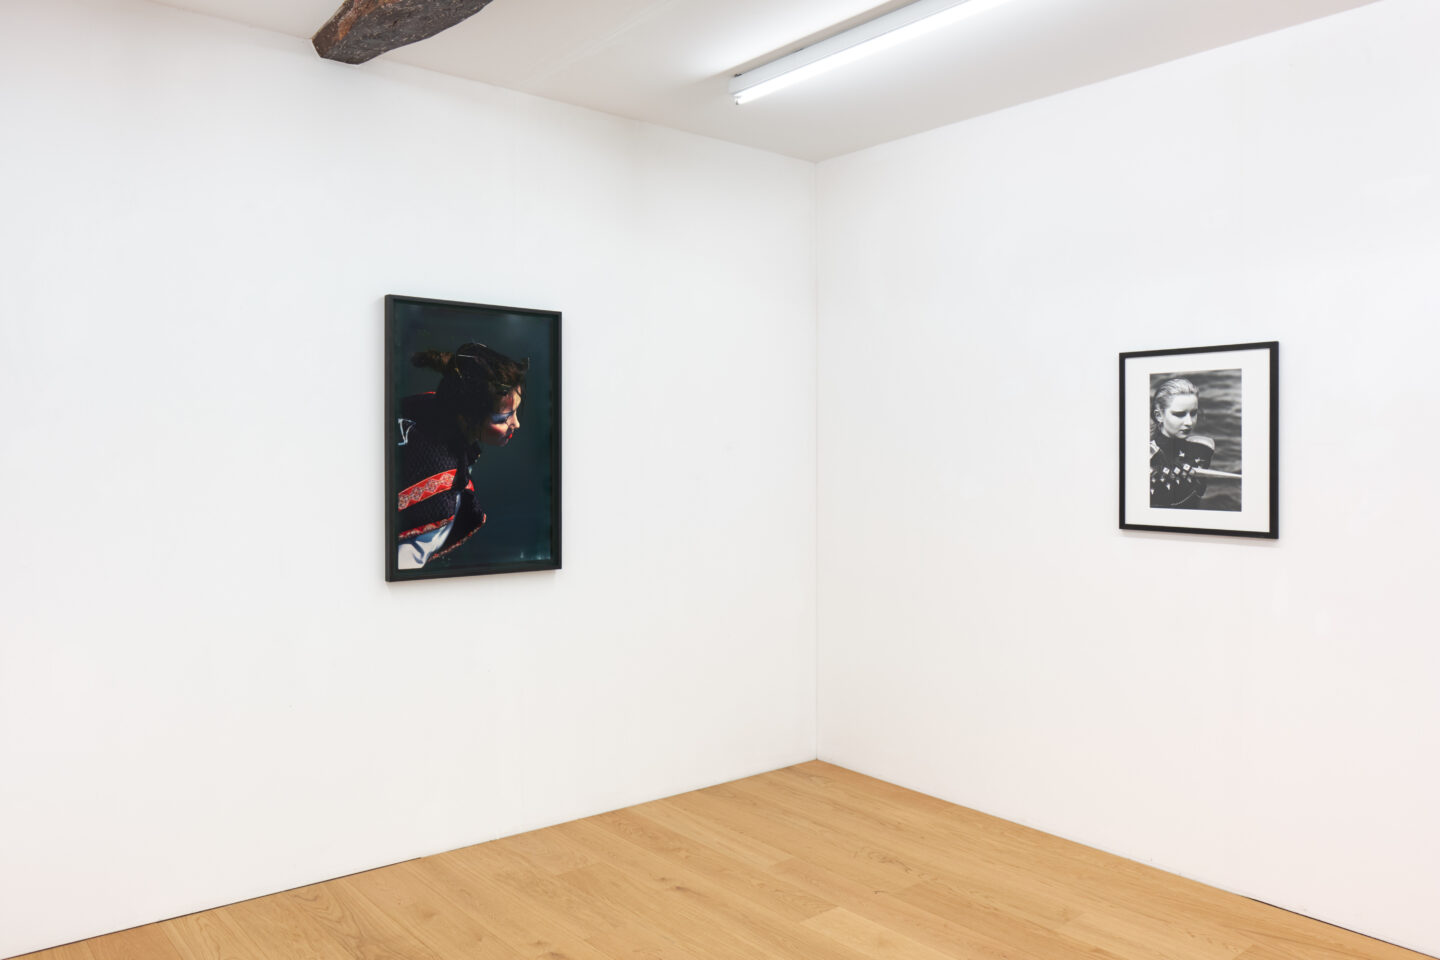 Exhibition View Ulrike Ottinger Soloshow «Madame X. Eine absolute Herrscherin» at Kirchgasse, Steckborn, 2019 / Courtesy: the artist